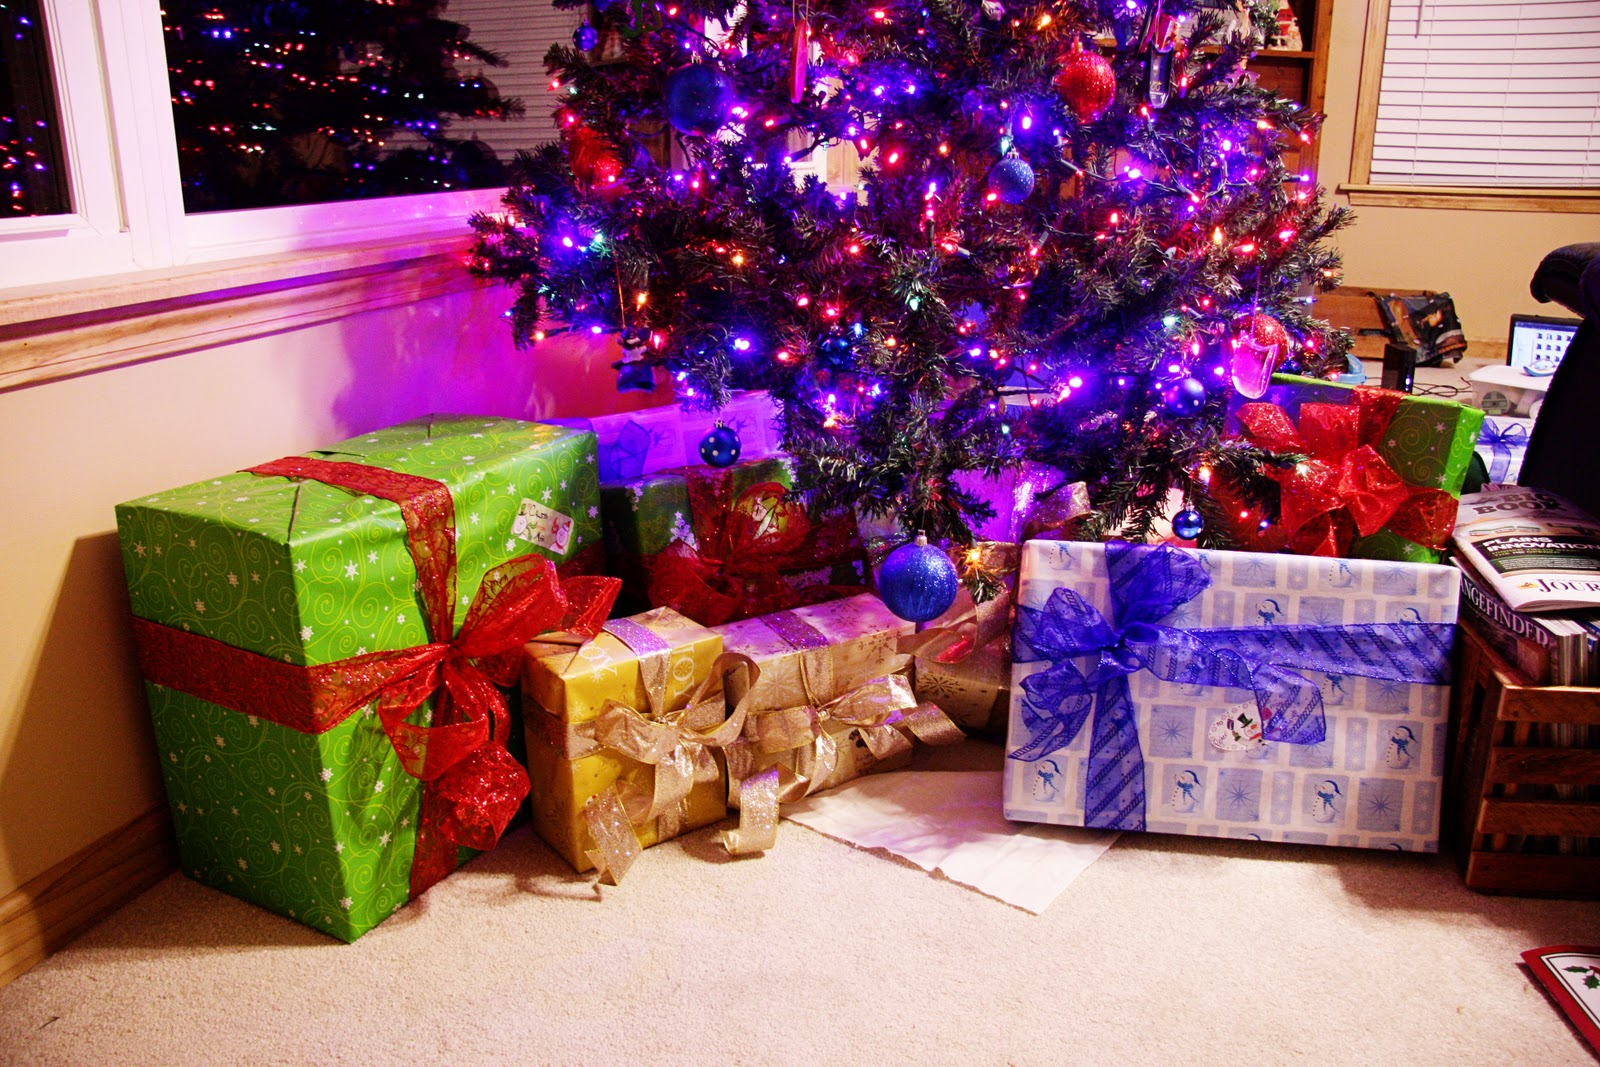 Presents under the tree | Gift wrapping, Christmas, Presents |Wrapped Christmas Presents Under The Tree